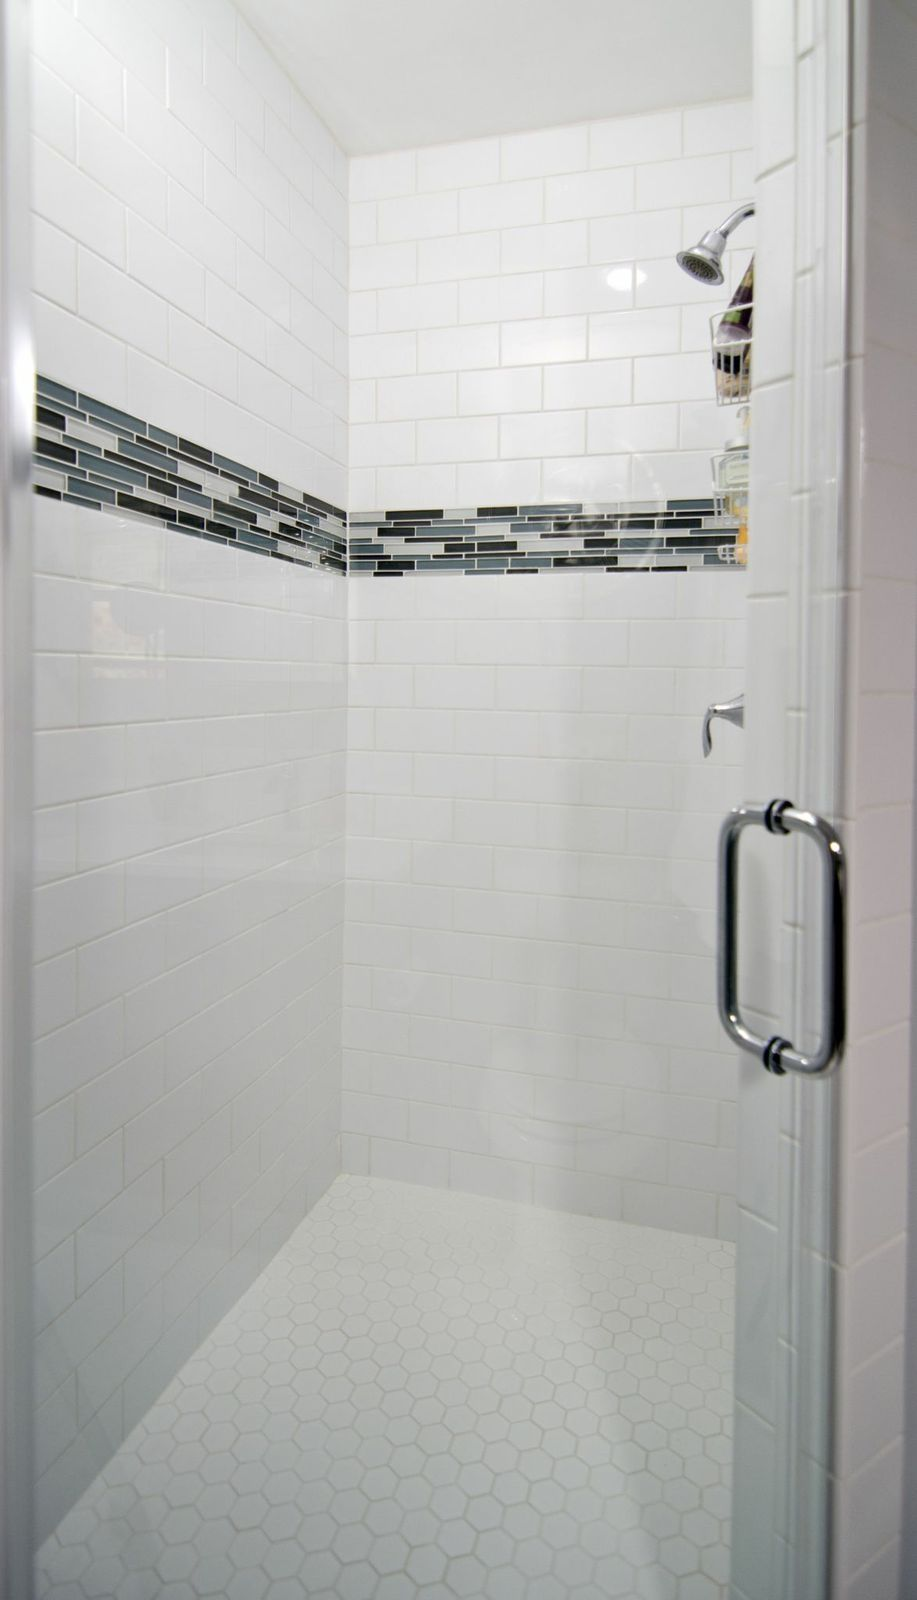 Bathroom Designs Using Subway Tile 1 mln bathroom tile ideas | home stuff | pinterest | tile ideas